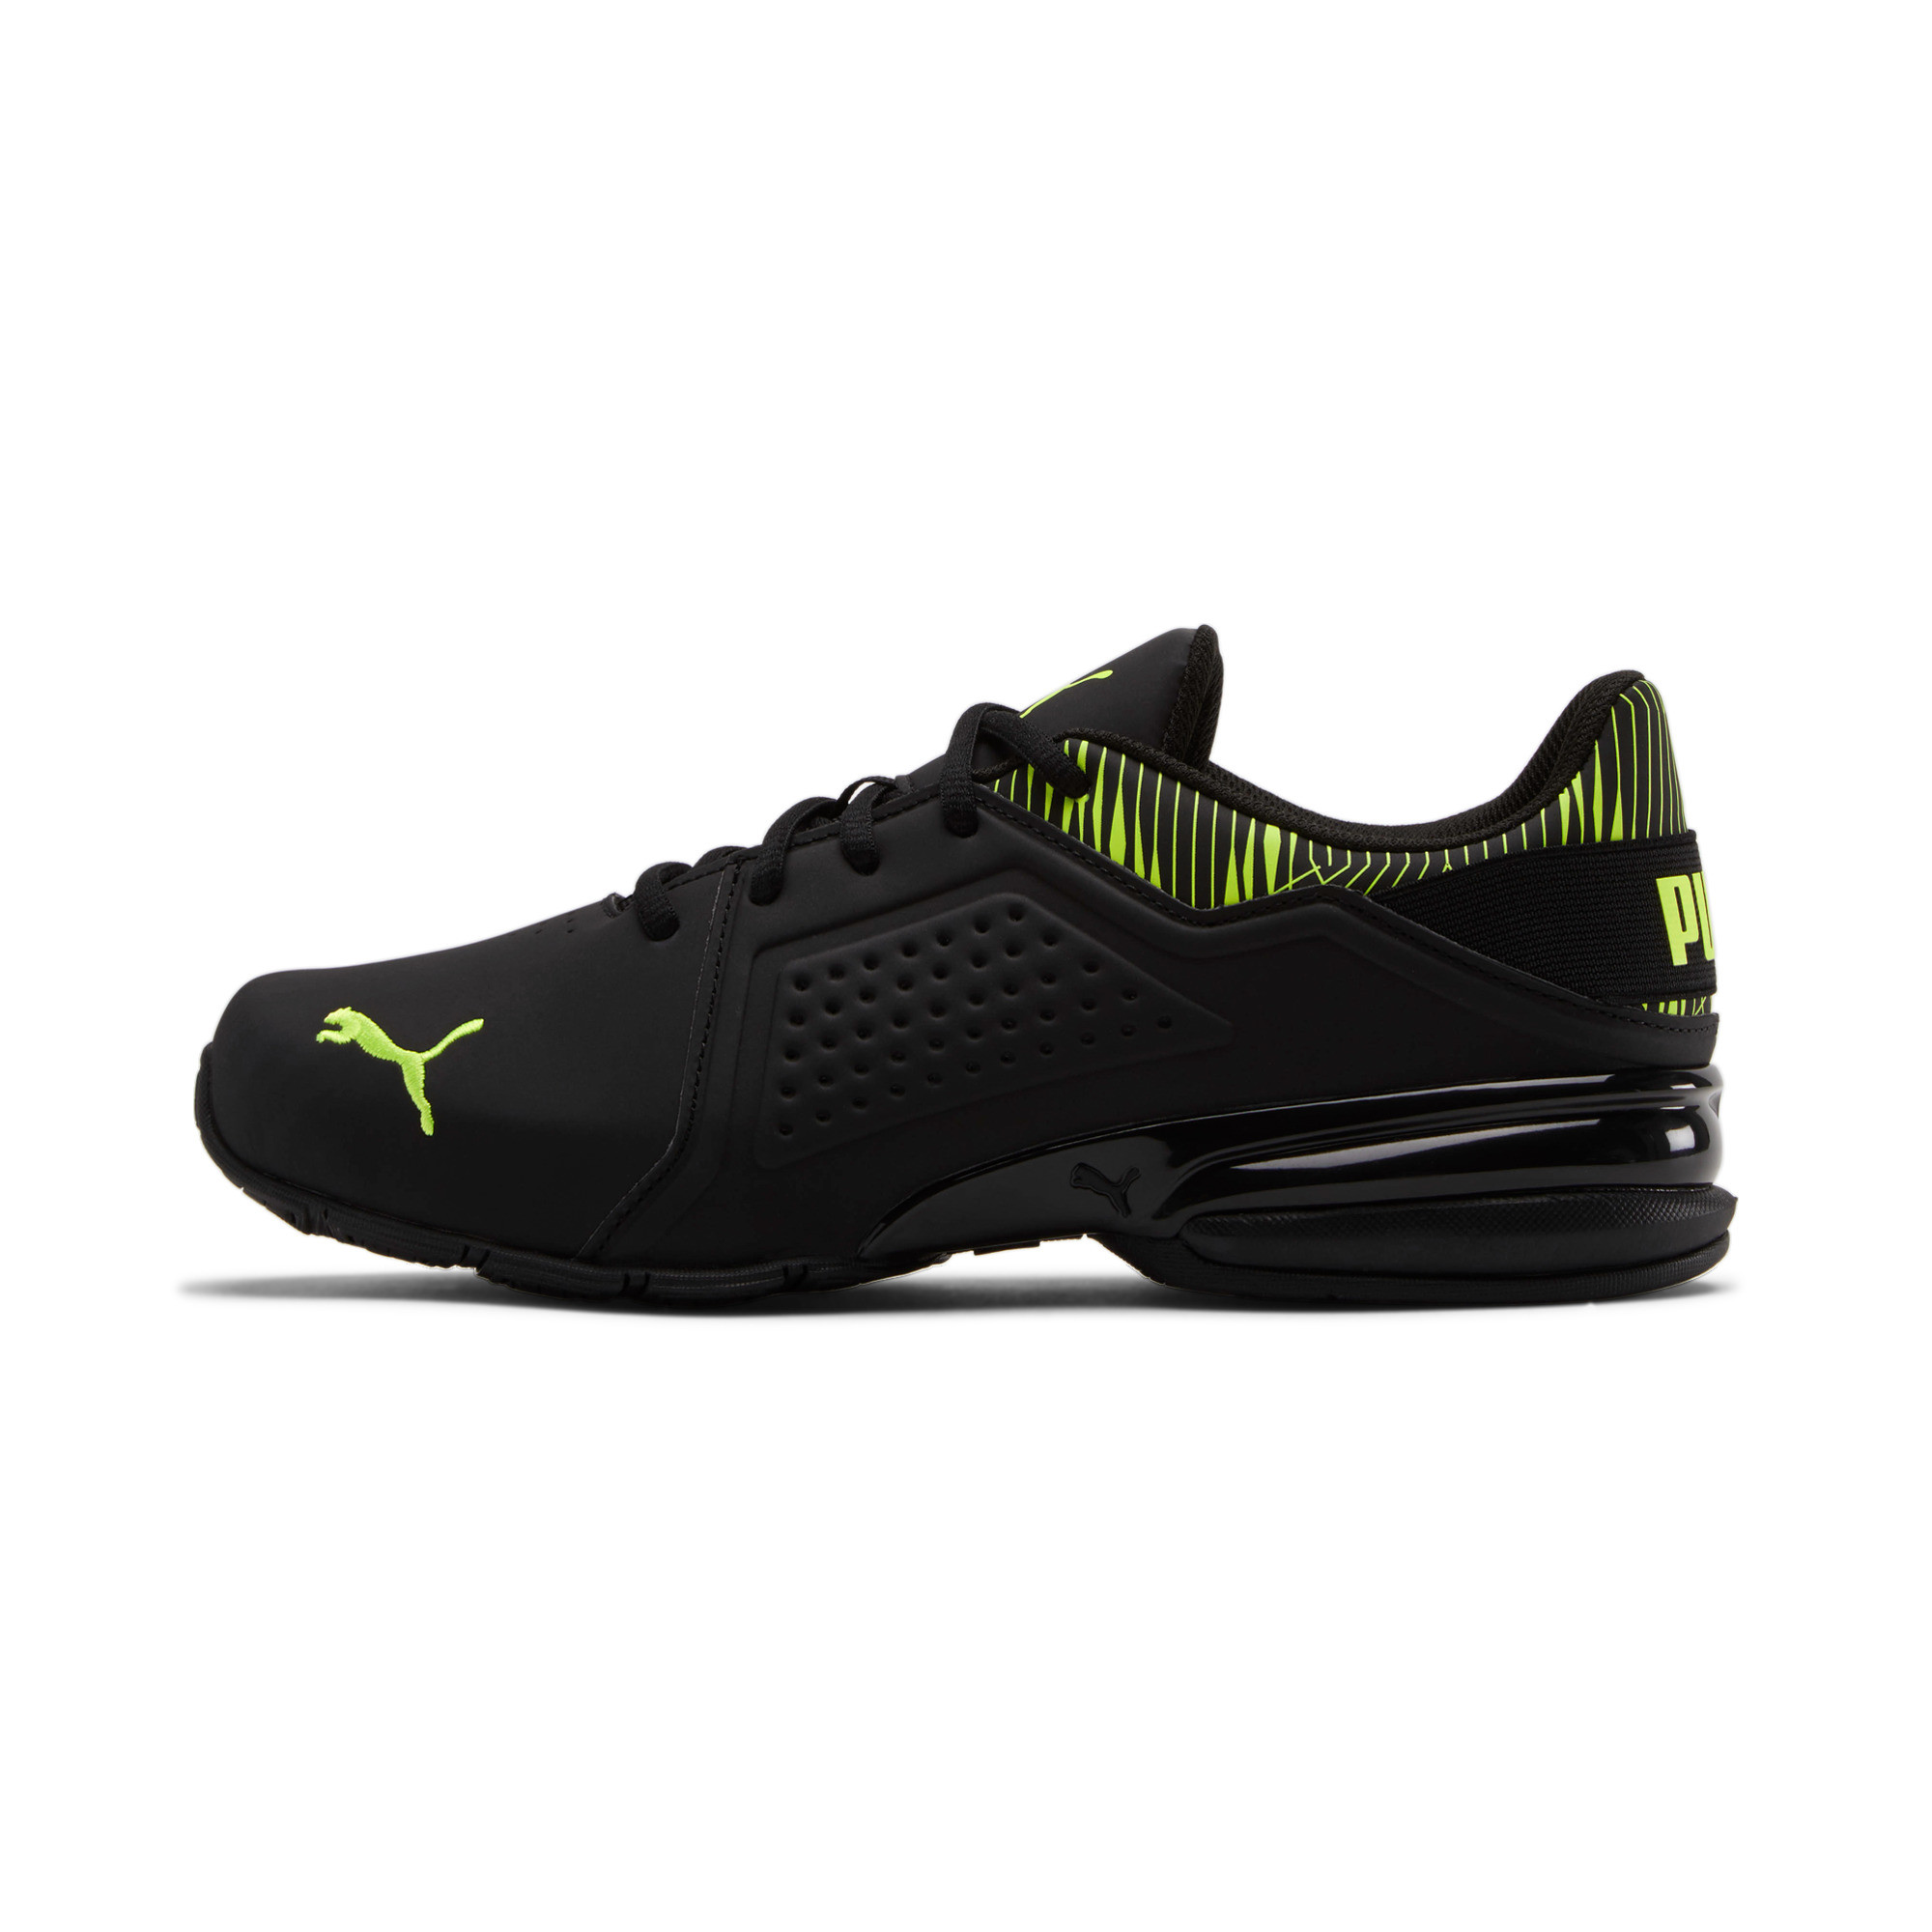 PUMA-Men-039-s-Viz-Runner-Graphic-Sneakers thumbnail 4